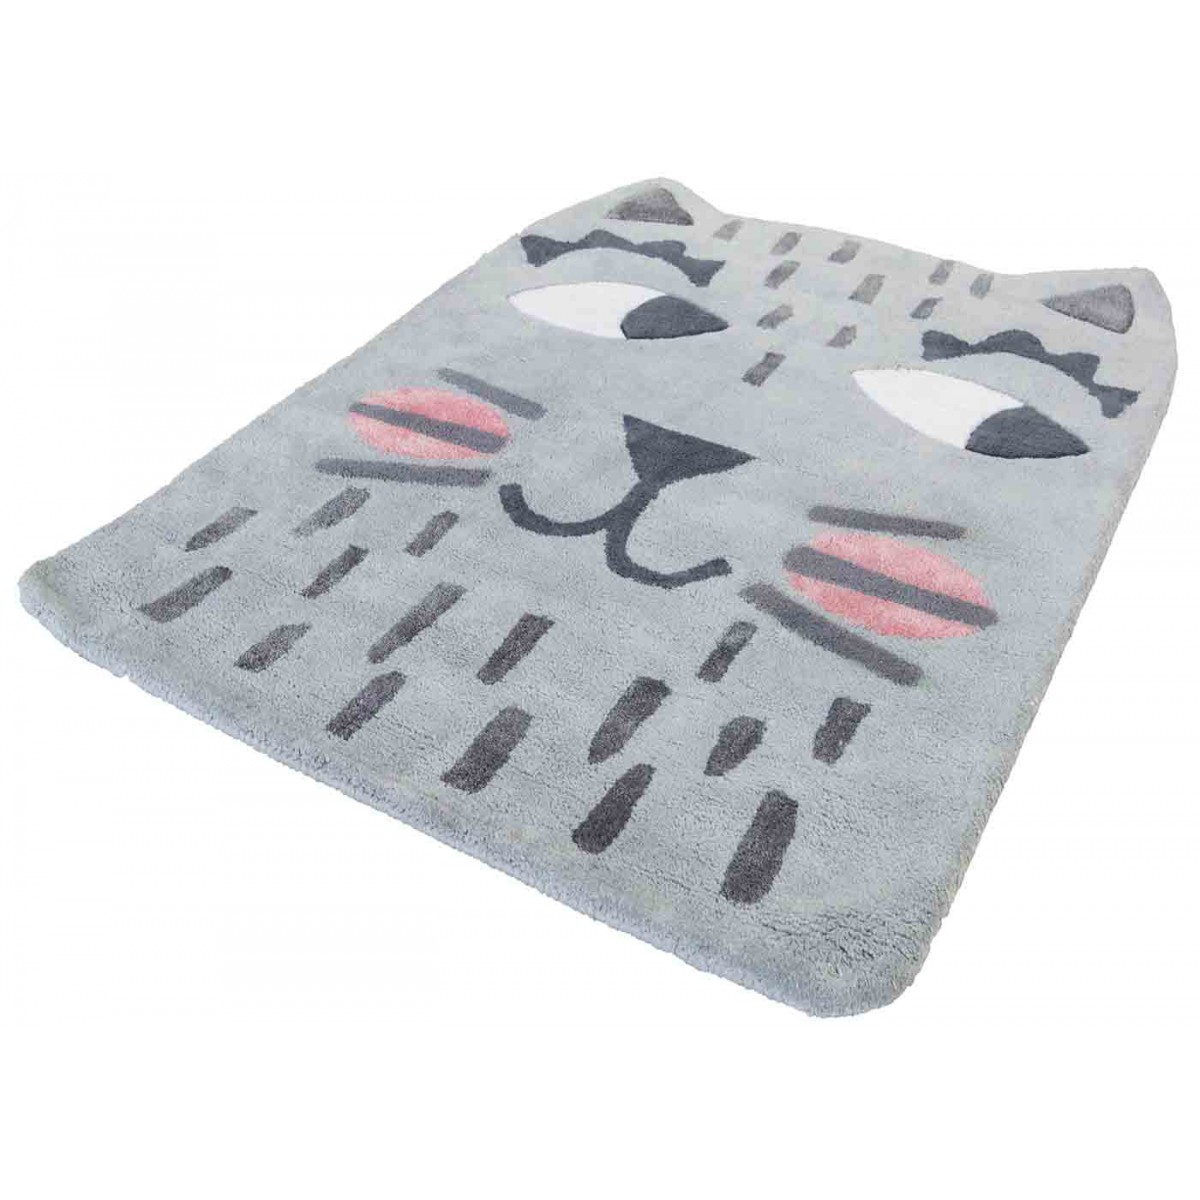 tapis enfant moderne et de qualit ralph le chat par nattiot. Black Bedroom Furniture Sets. Home Design Ideas